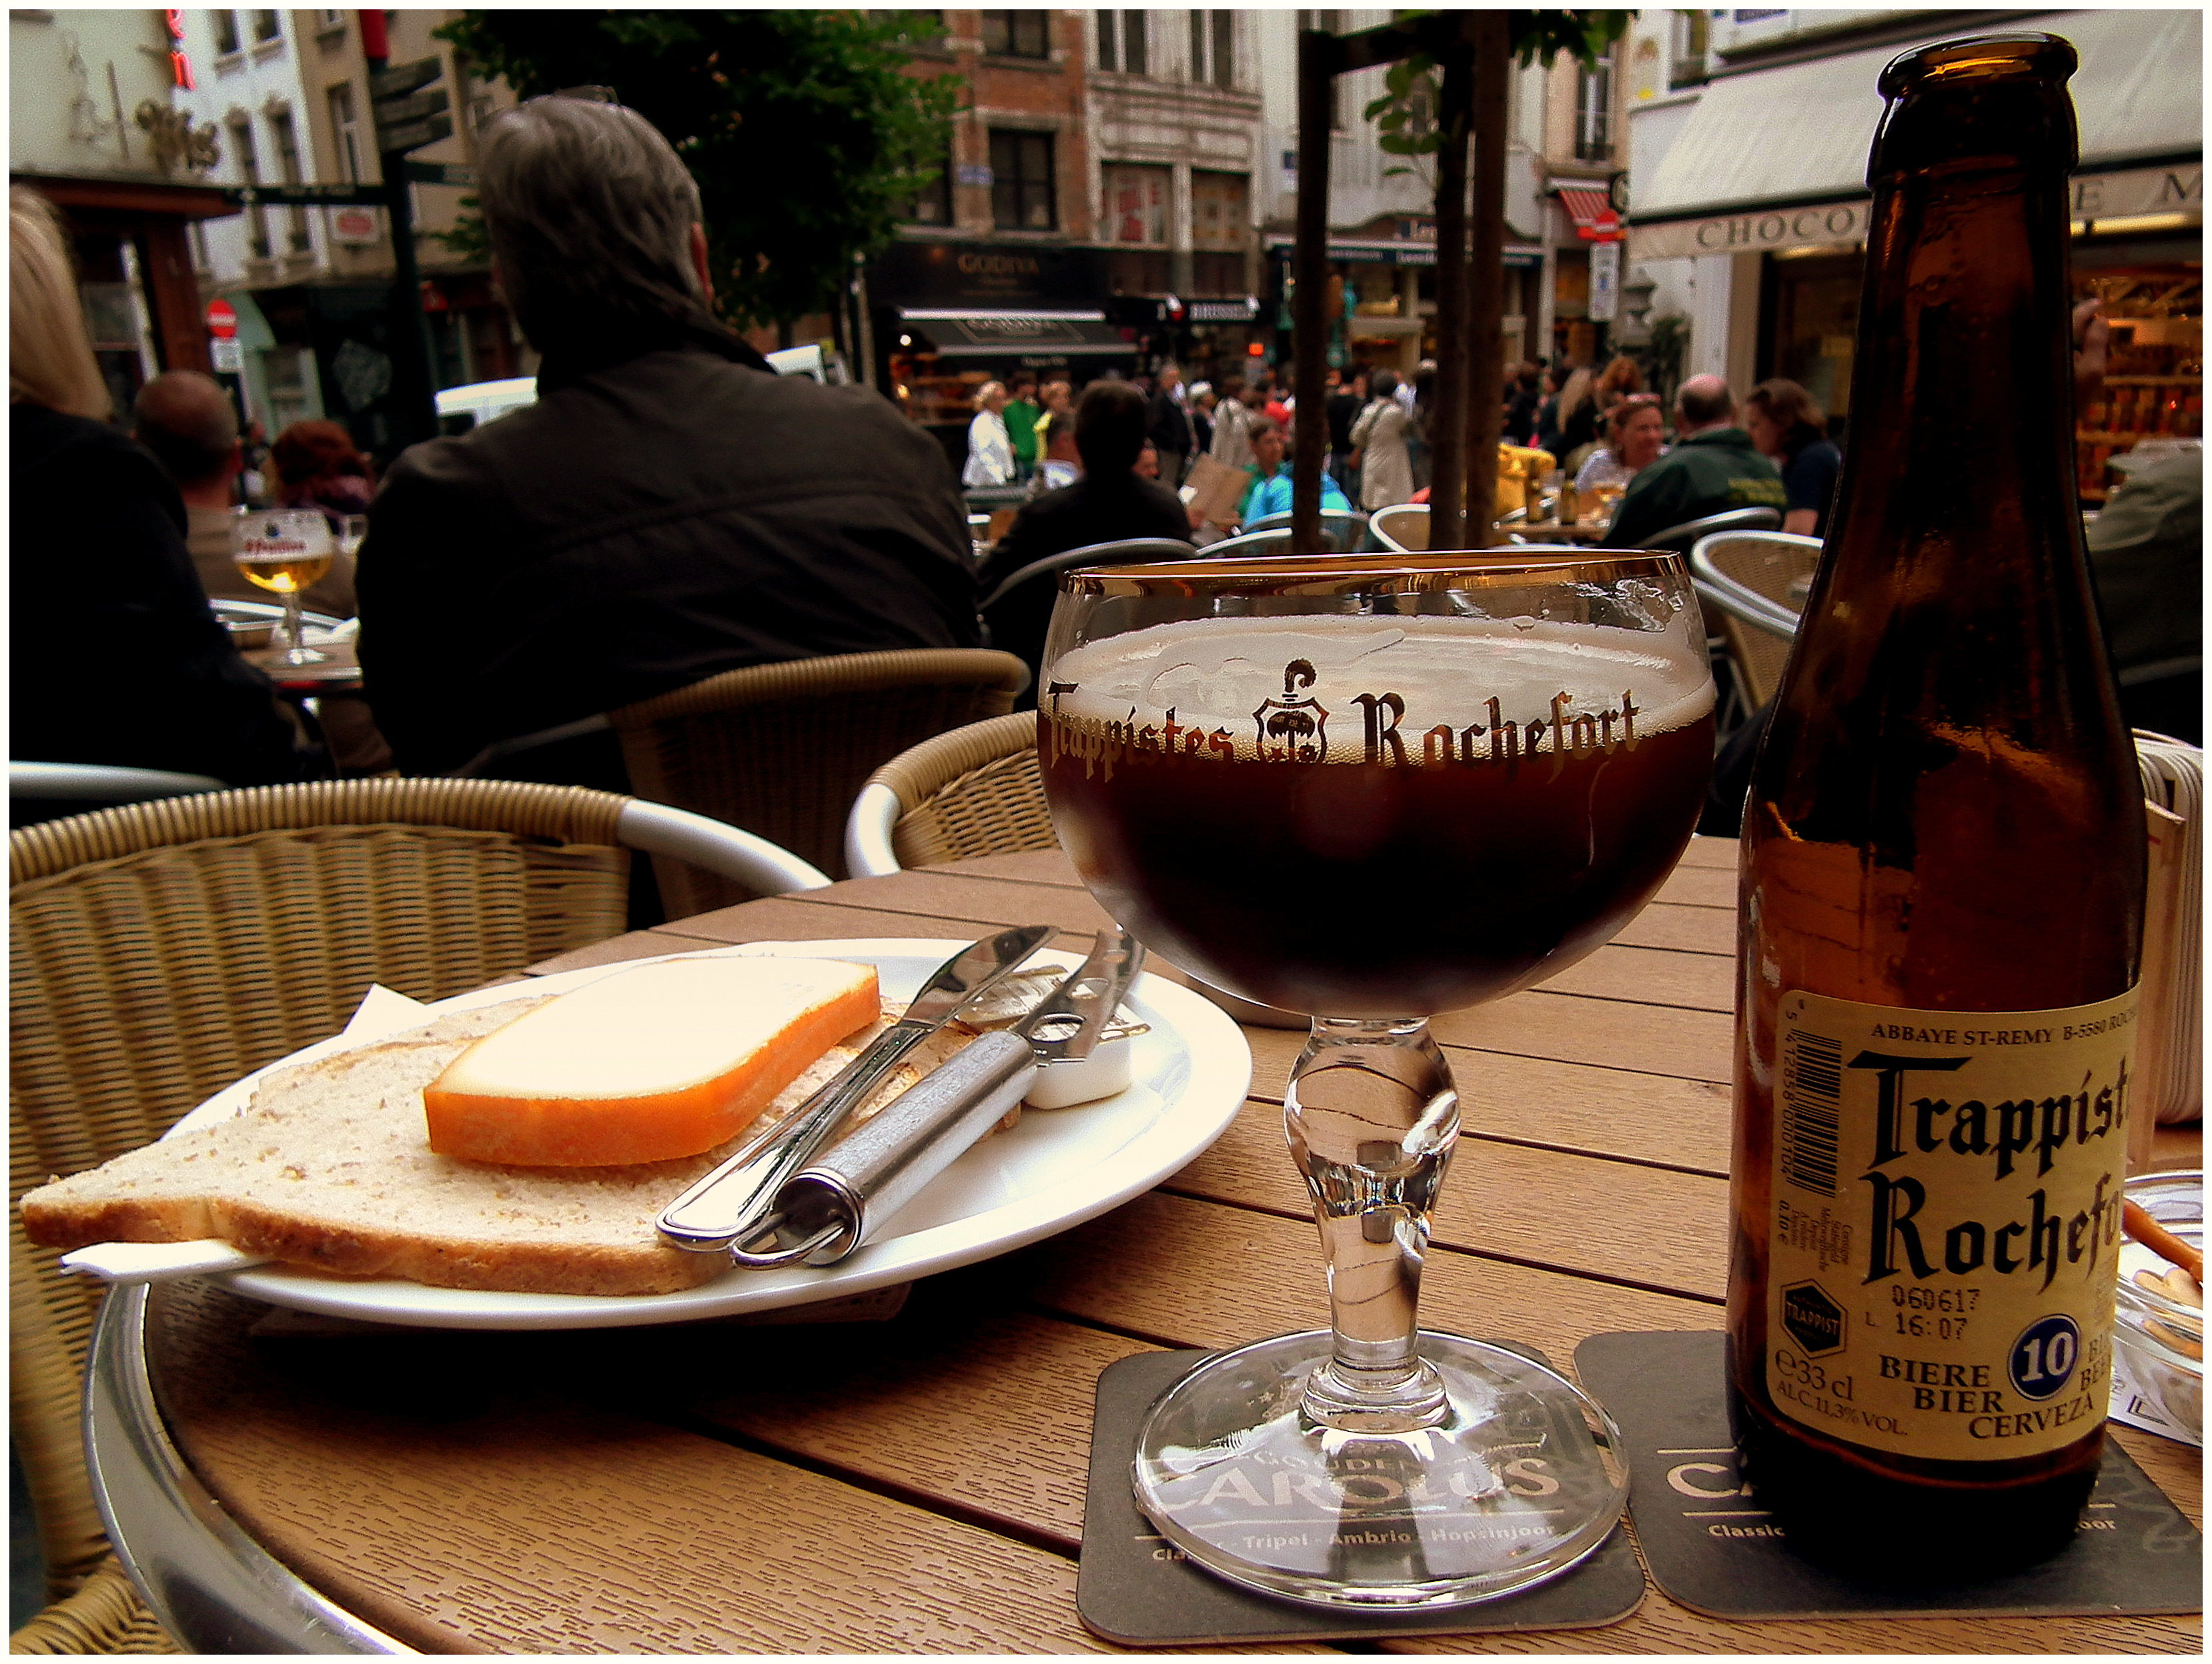 File:TRAPPIST ROCHEFORT BEER AND CHEESE AT THE ...